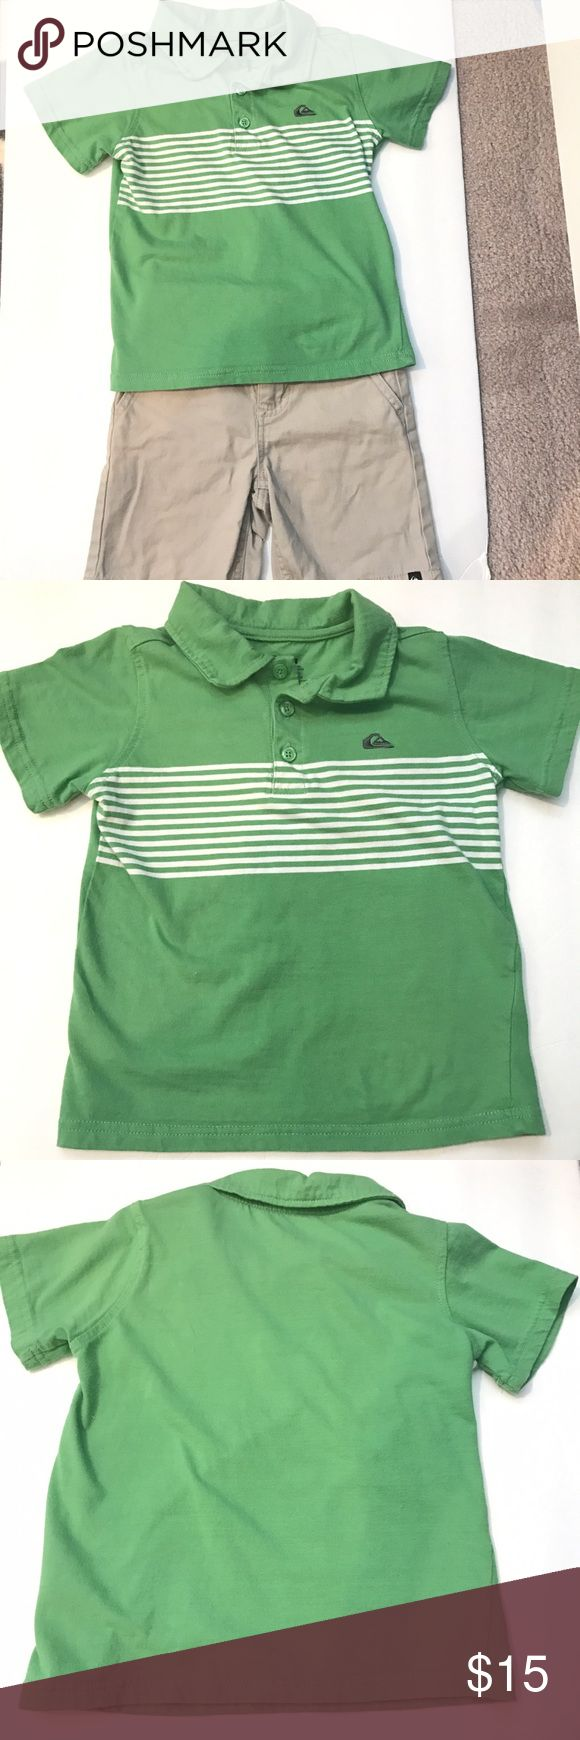 Quiksilver shorts & polo shirt • size 4T Quiksilver shorts & polo shirt • size 4T • green polo shirt • adjustable beige shorts • slight stain on shorts (see pic) • pet free • nonsmoking home Quiksilver Shirts & Tops Polos